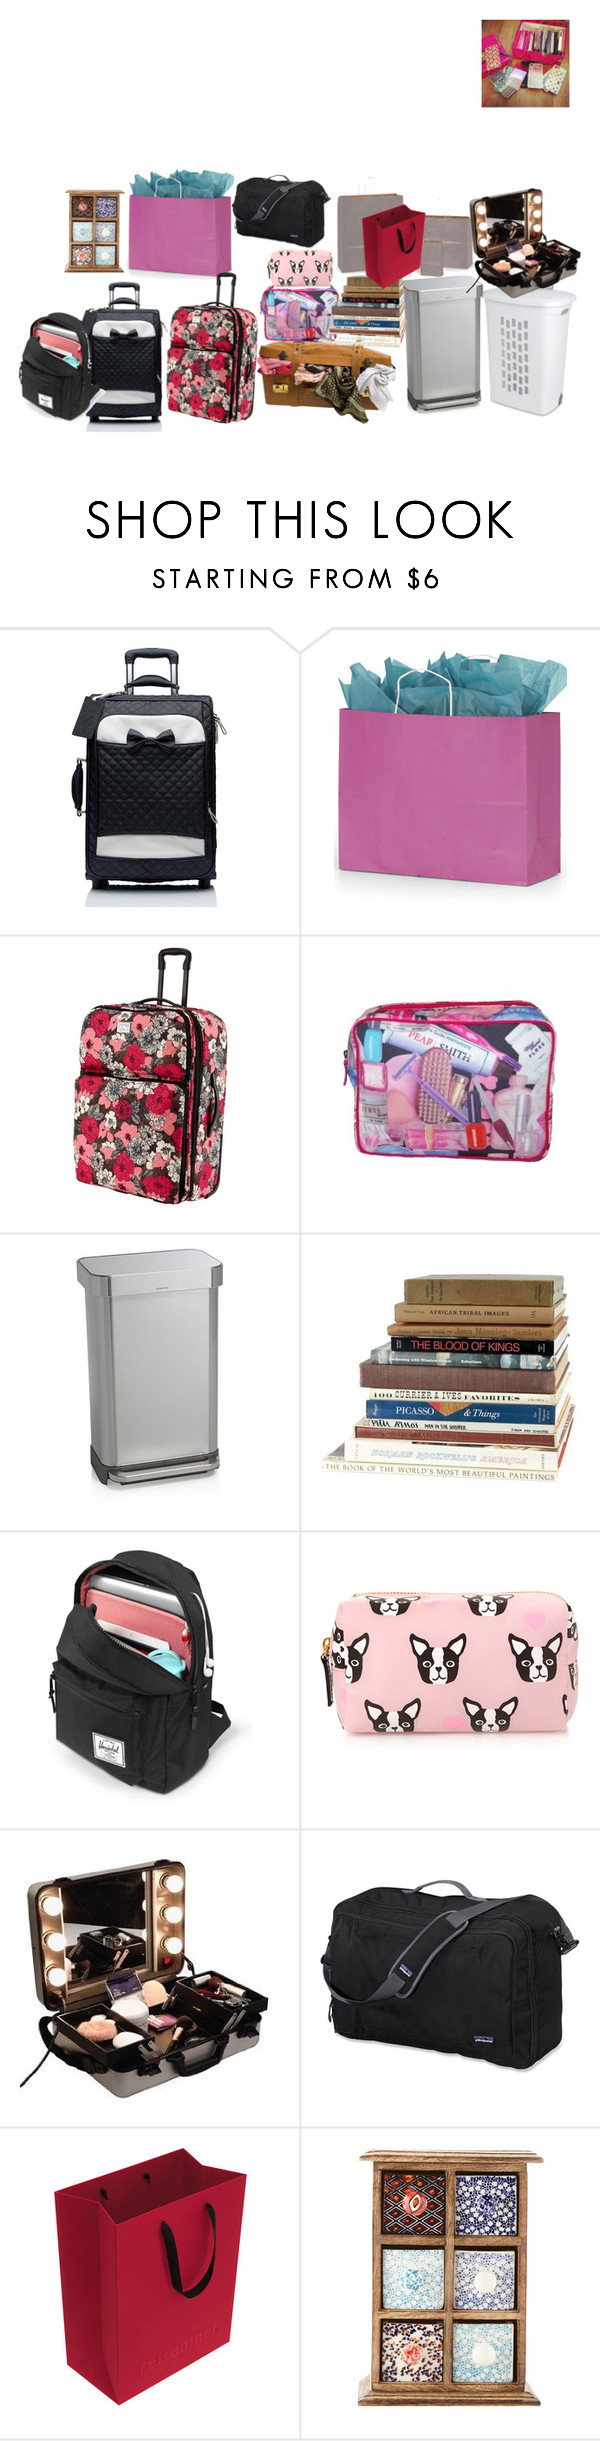 """""""Sem título #81"""" by renatareeh on Polyvore featuring beleza, Forever New, Sterilite, Vera Bradley, Paul Smith, Crate and Barrel, Forever 21, CO, Patagonia e Reisenthel"""